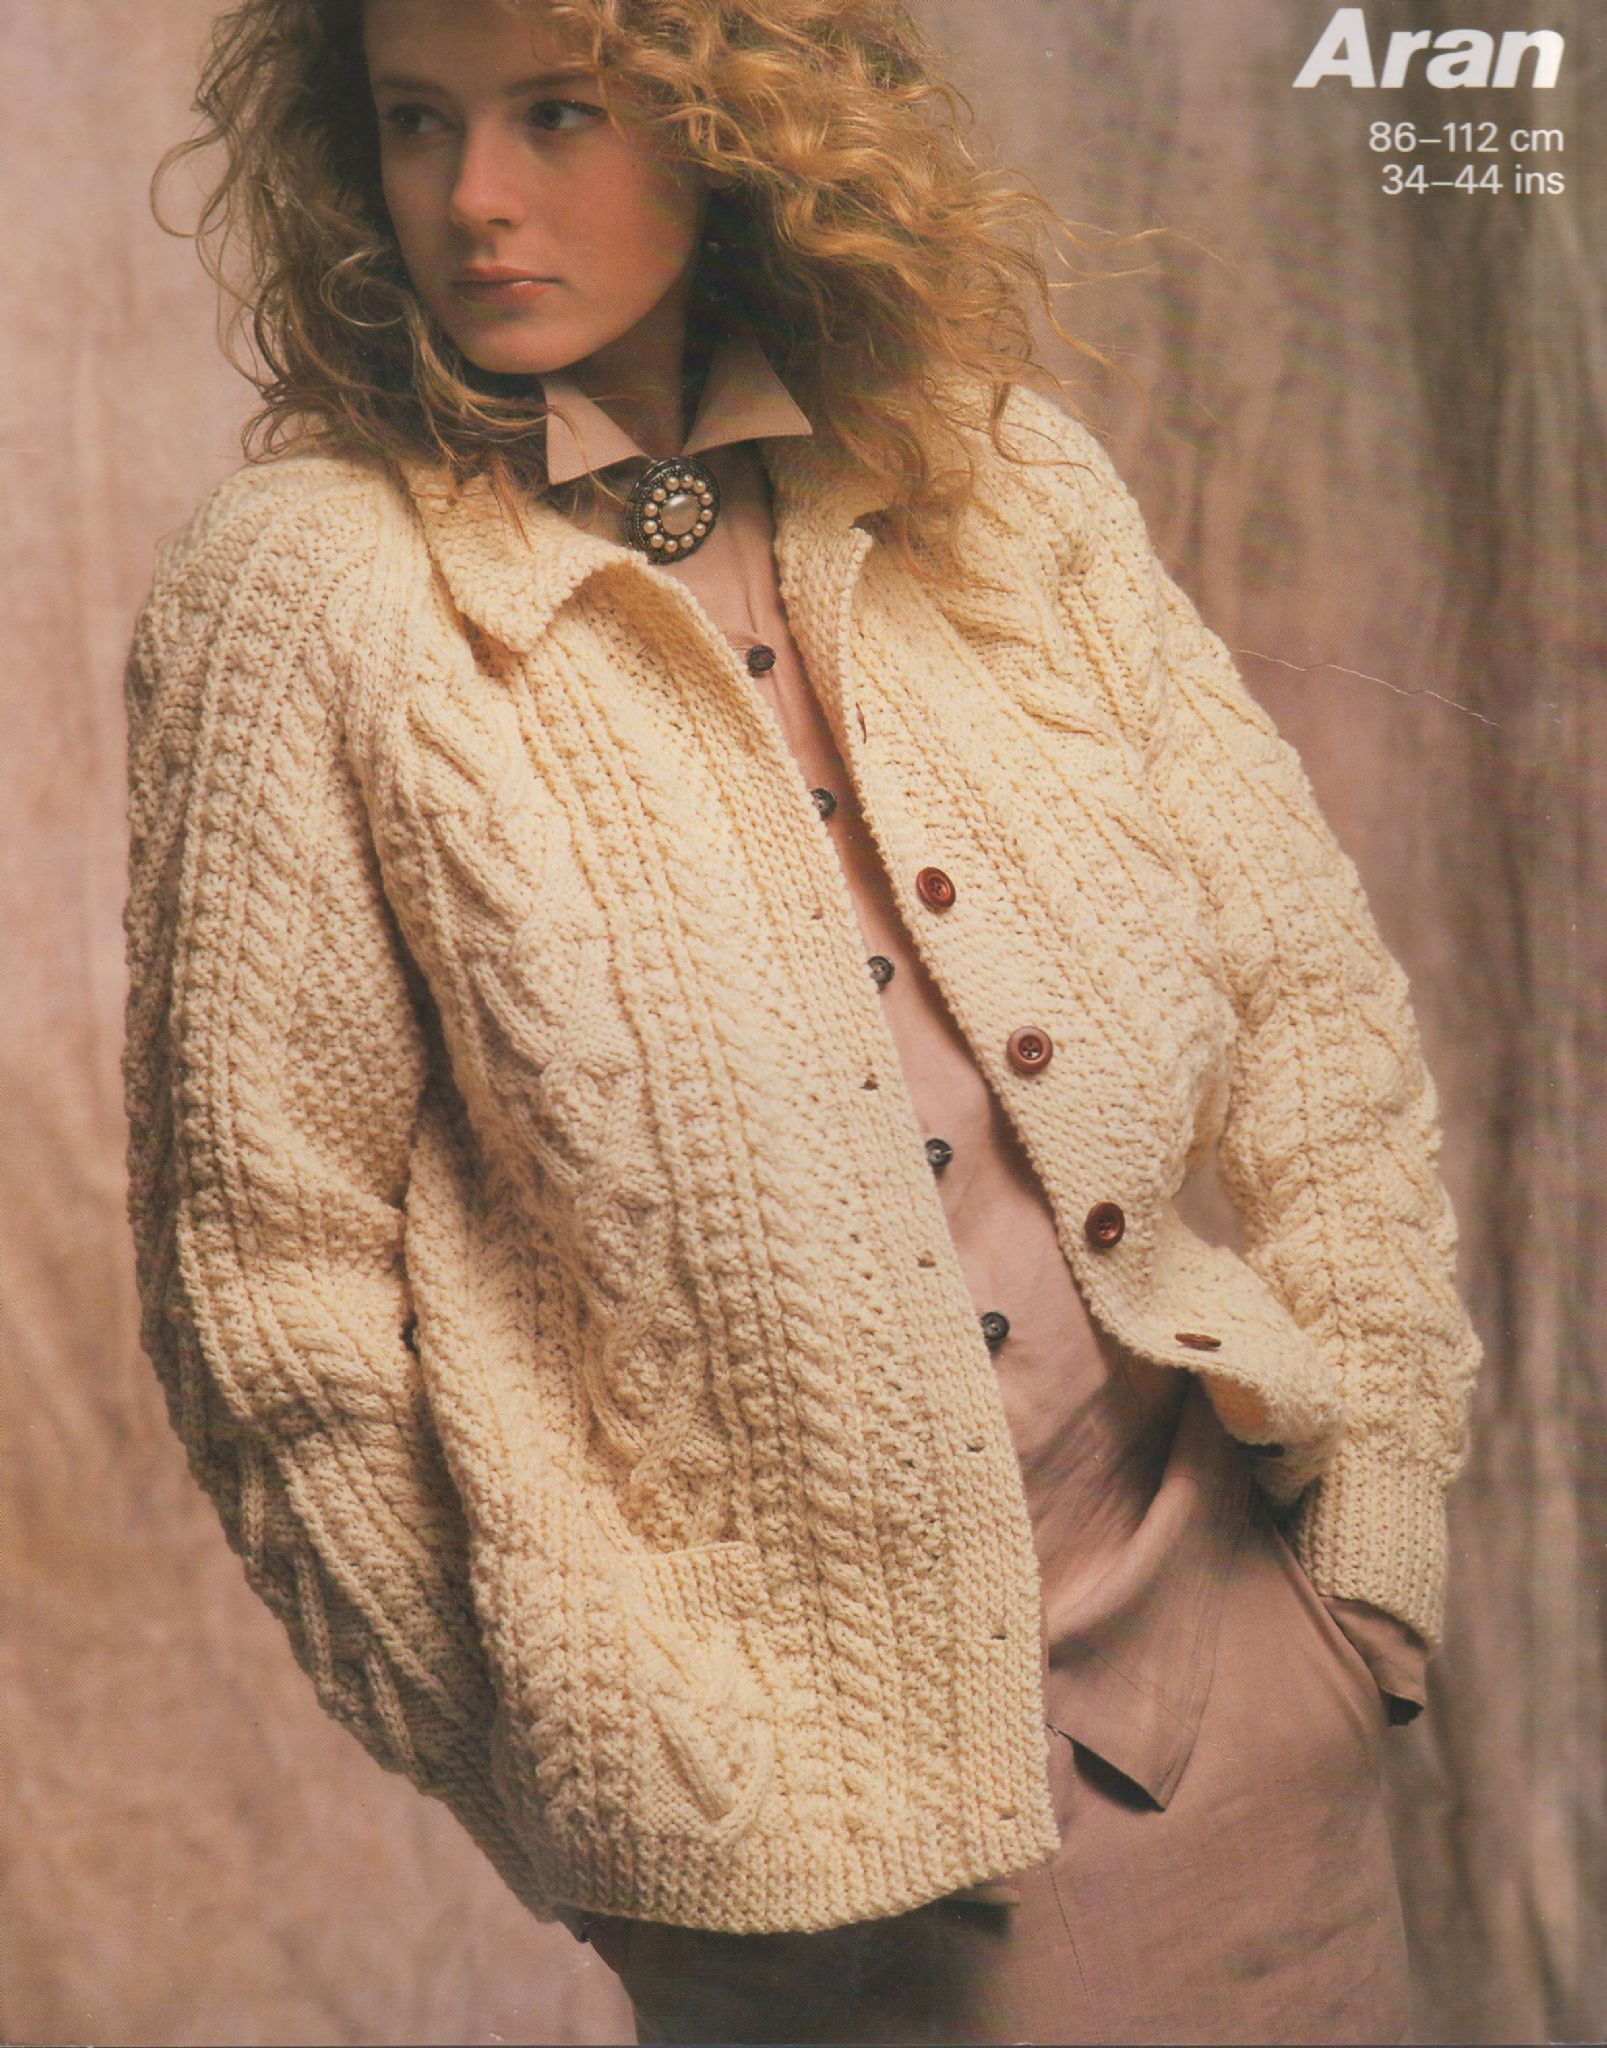 Aran Knit Cardigan Pattern Pdf Vintage Knitting Pattern Ladies Aran Cable Cardigan Jacket Bust 34 44